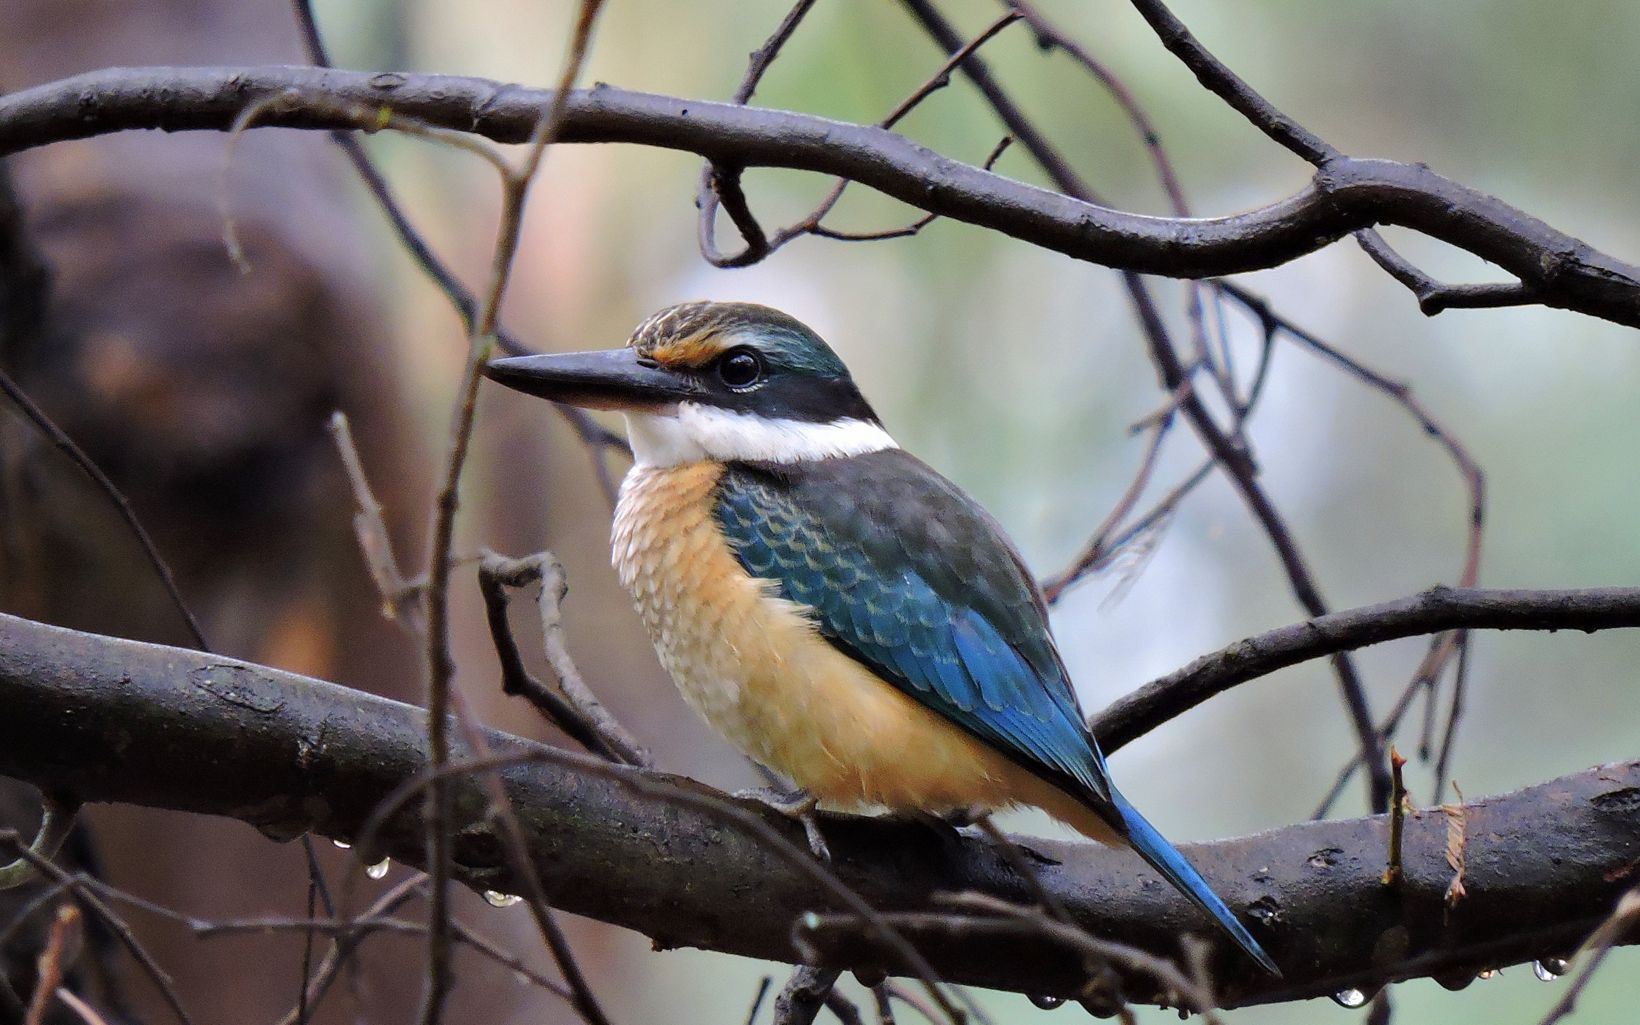 Australia is blessed with ten native species of kingfishers